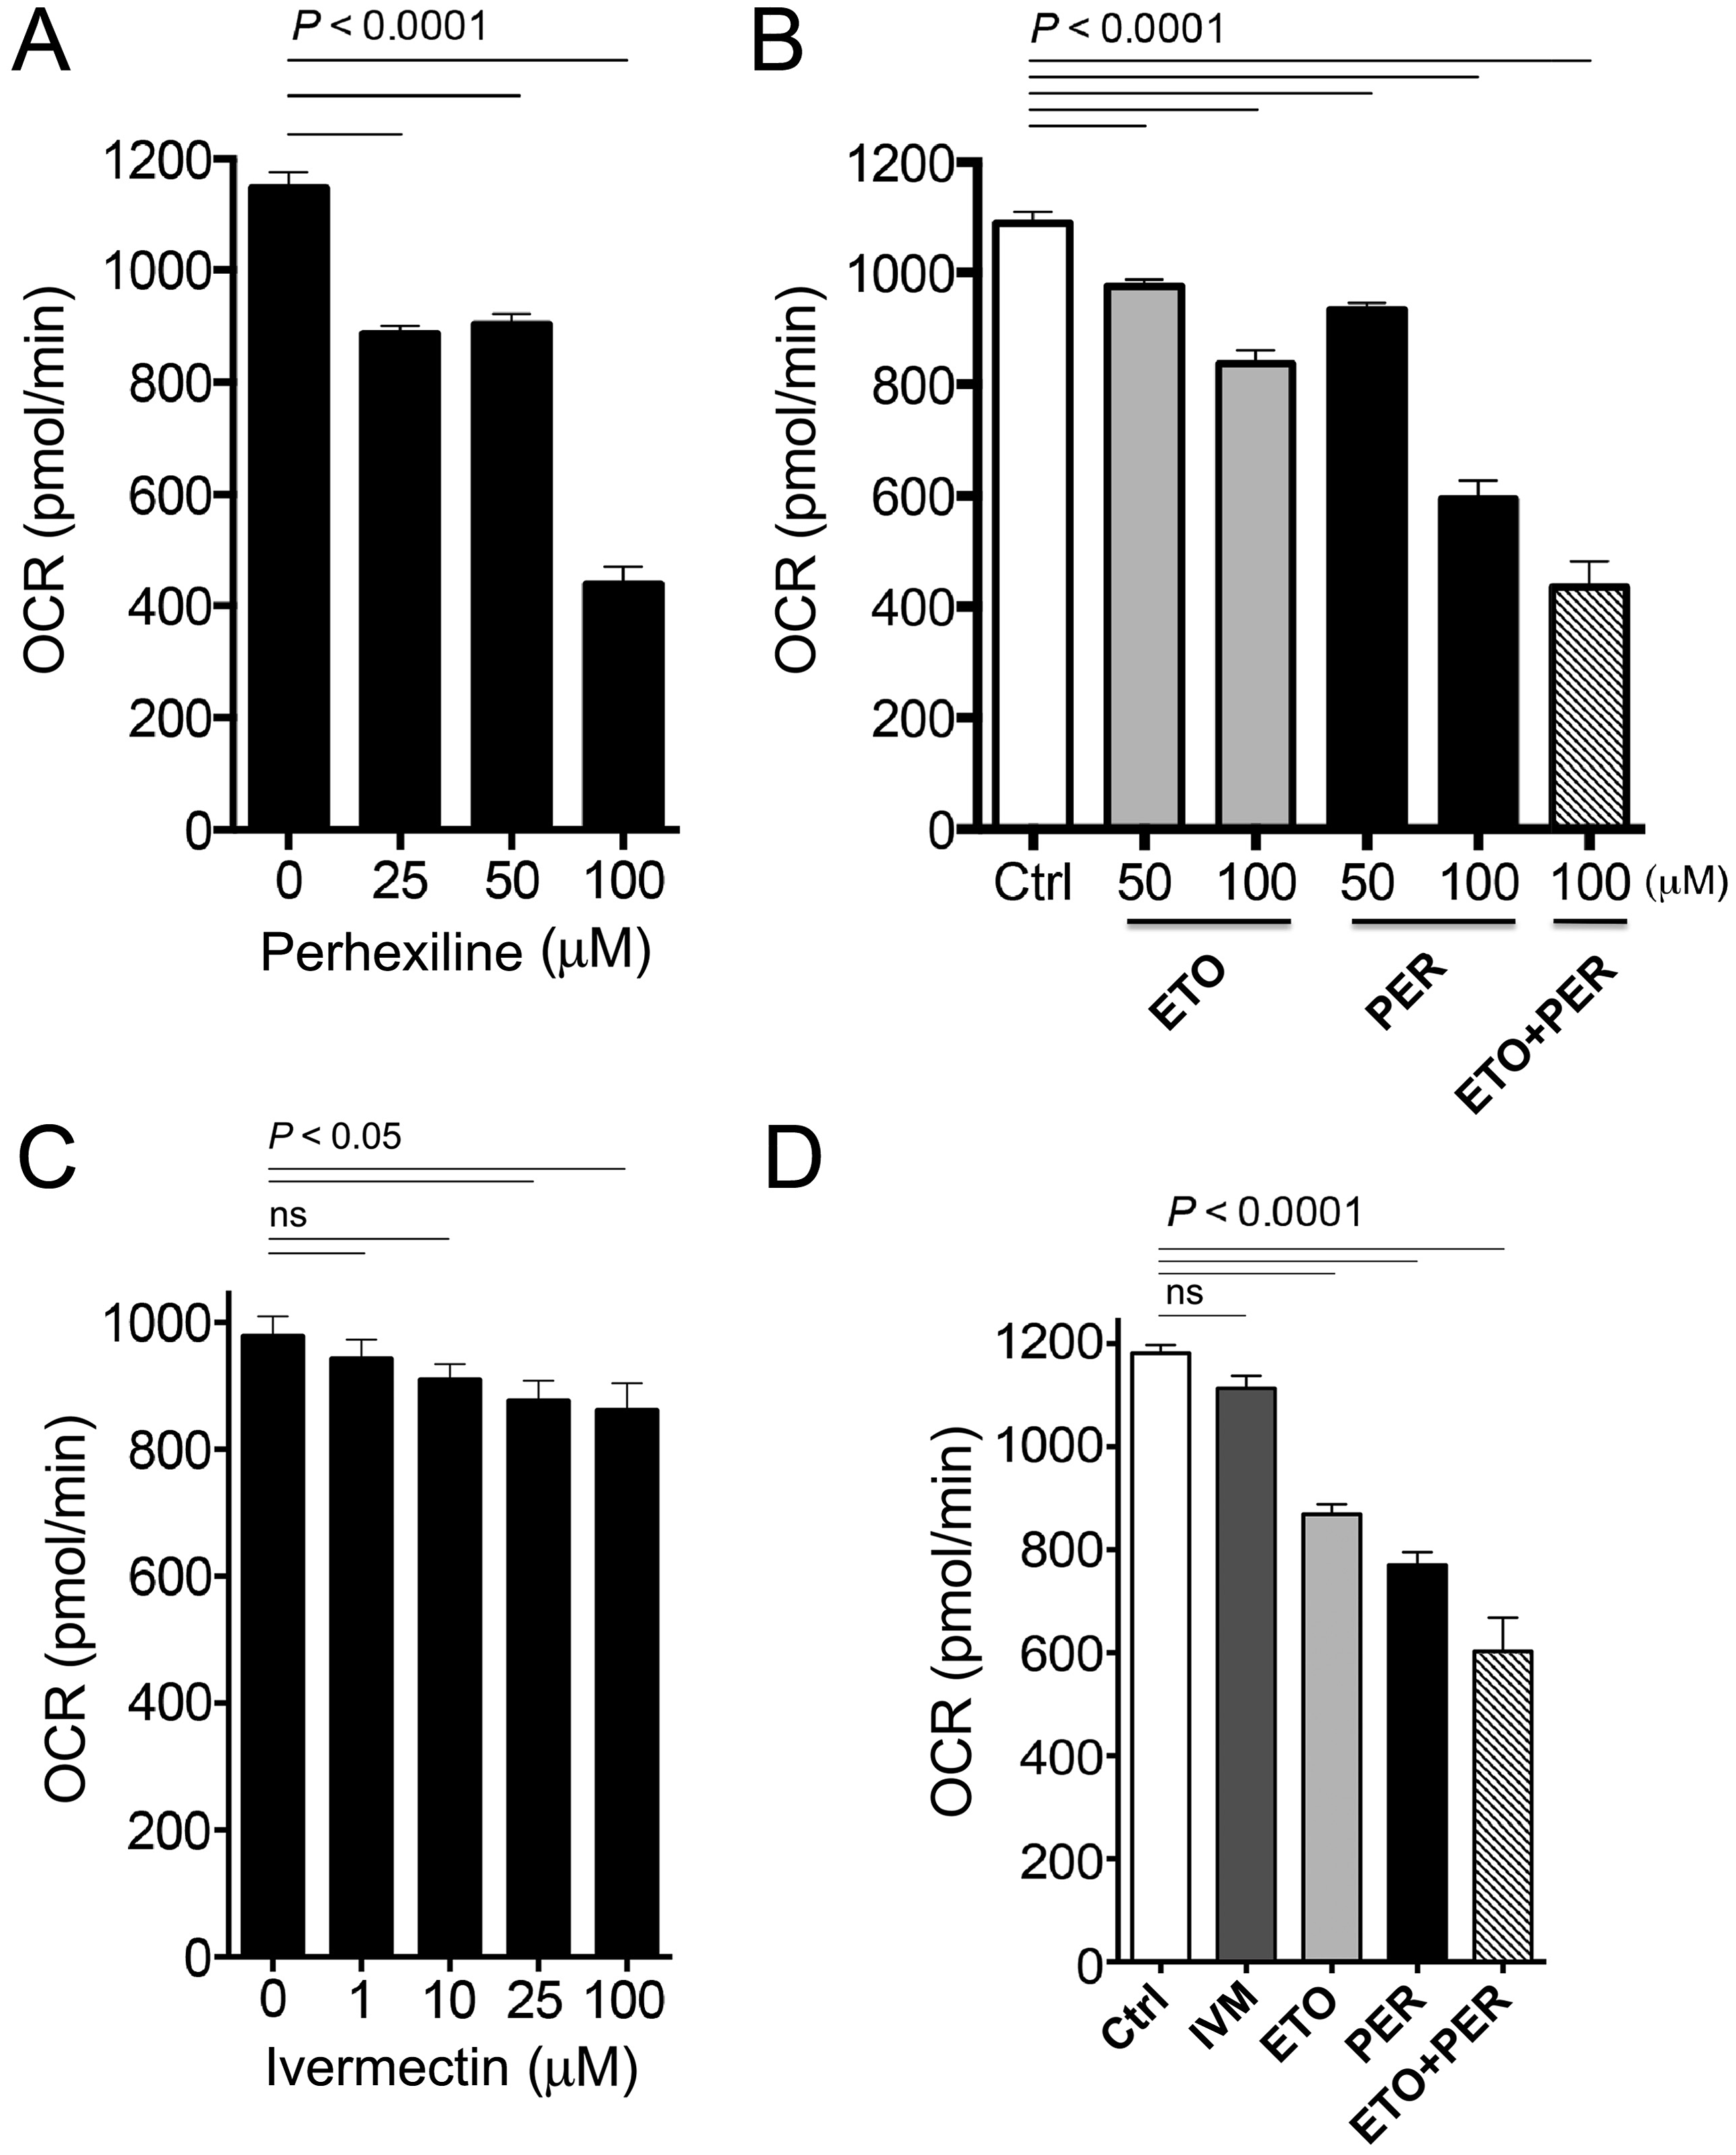 Oxygen consumption rates in <i>C. elegans</i> after exposure to varying concentrations of Perhexiline (PER), Etomoxir (ETO) and Ivermectin (IVM).